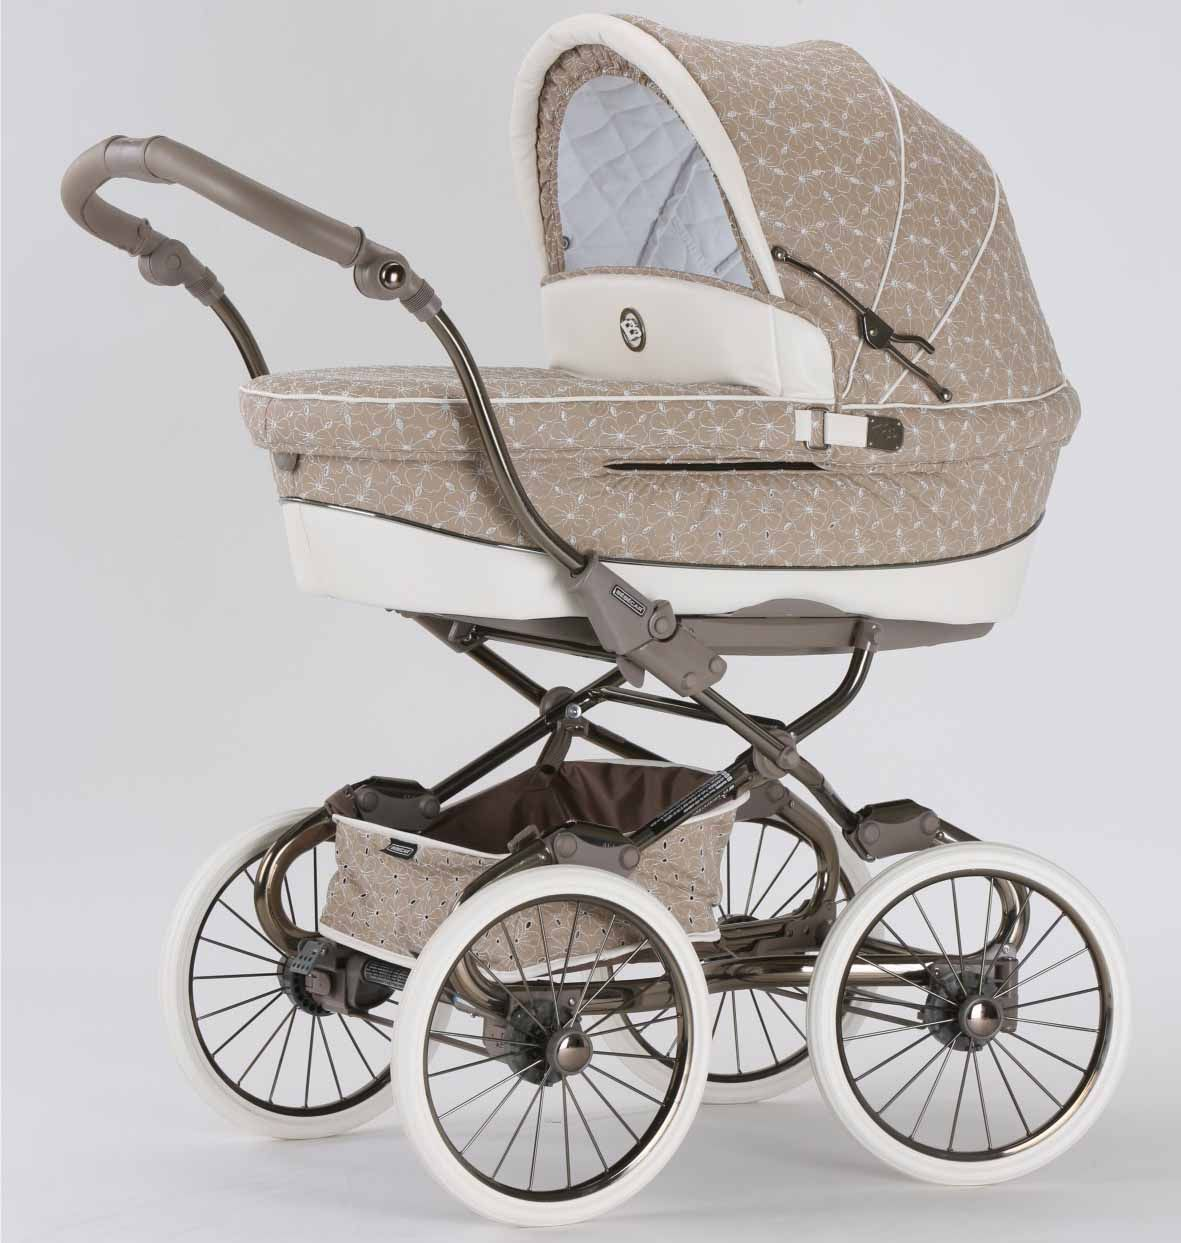 bebecar stylo p671 prive collection wandelwagen stroller poussette accessories available. Black Bedroom Furniture Sets. Home Design Ideas